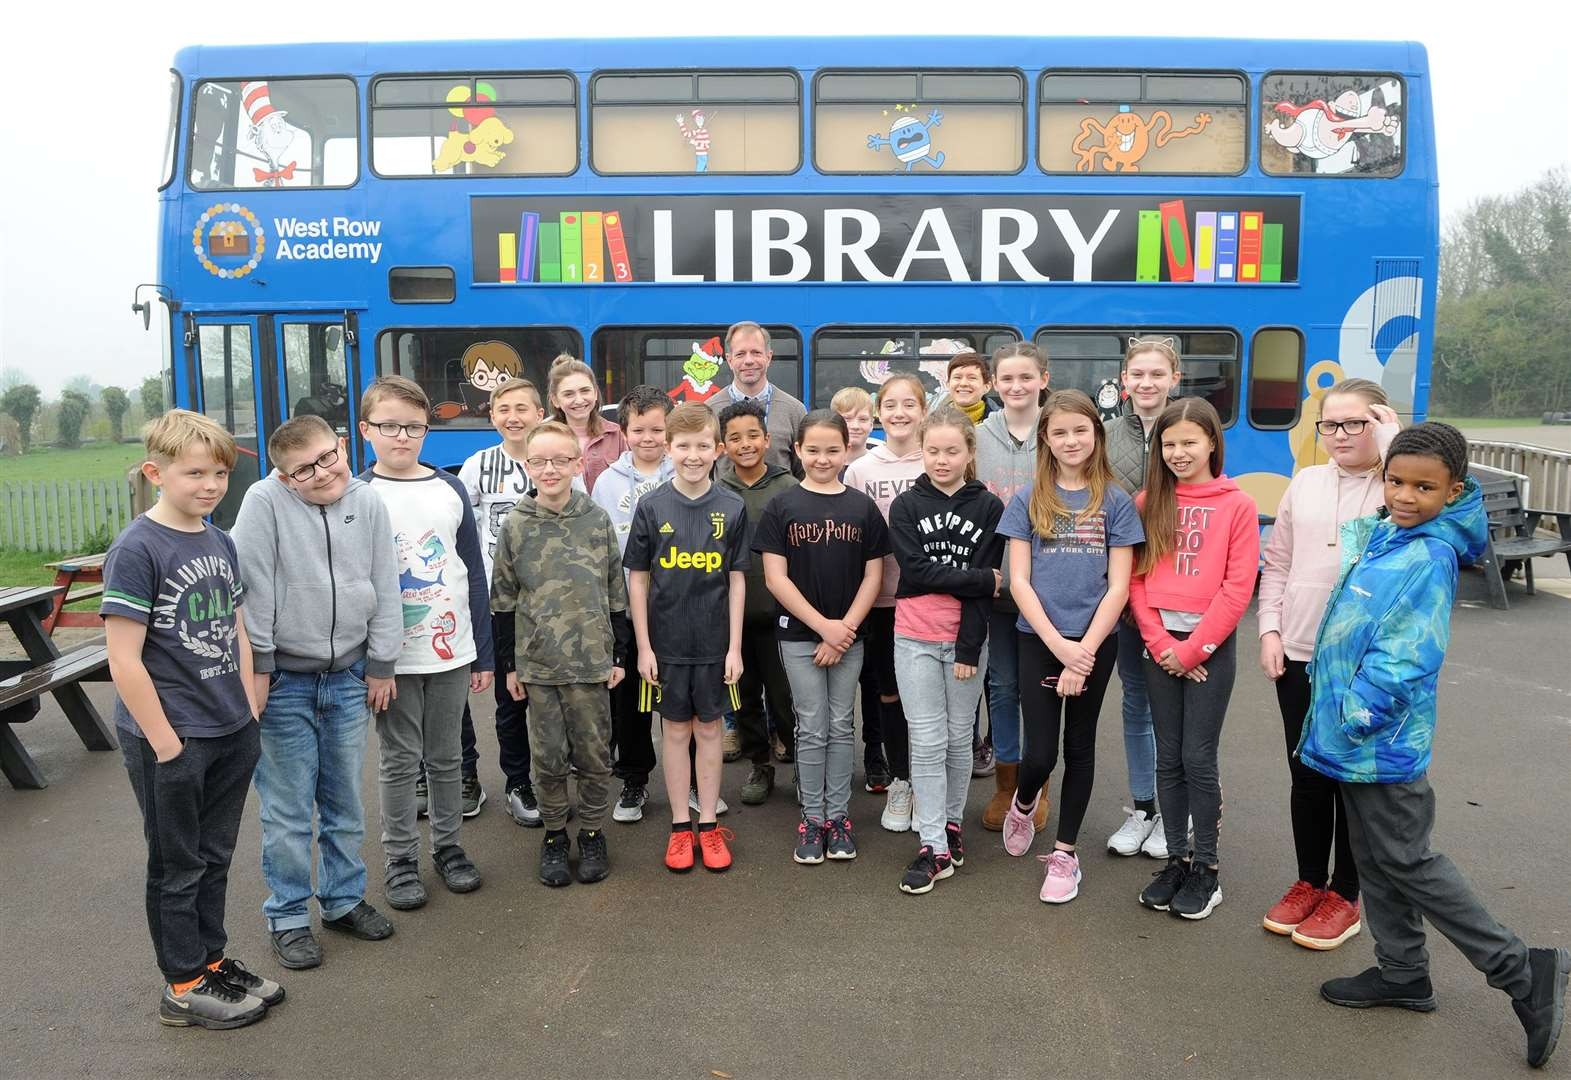 'It was worth the wait' – new chapter for school library bus